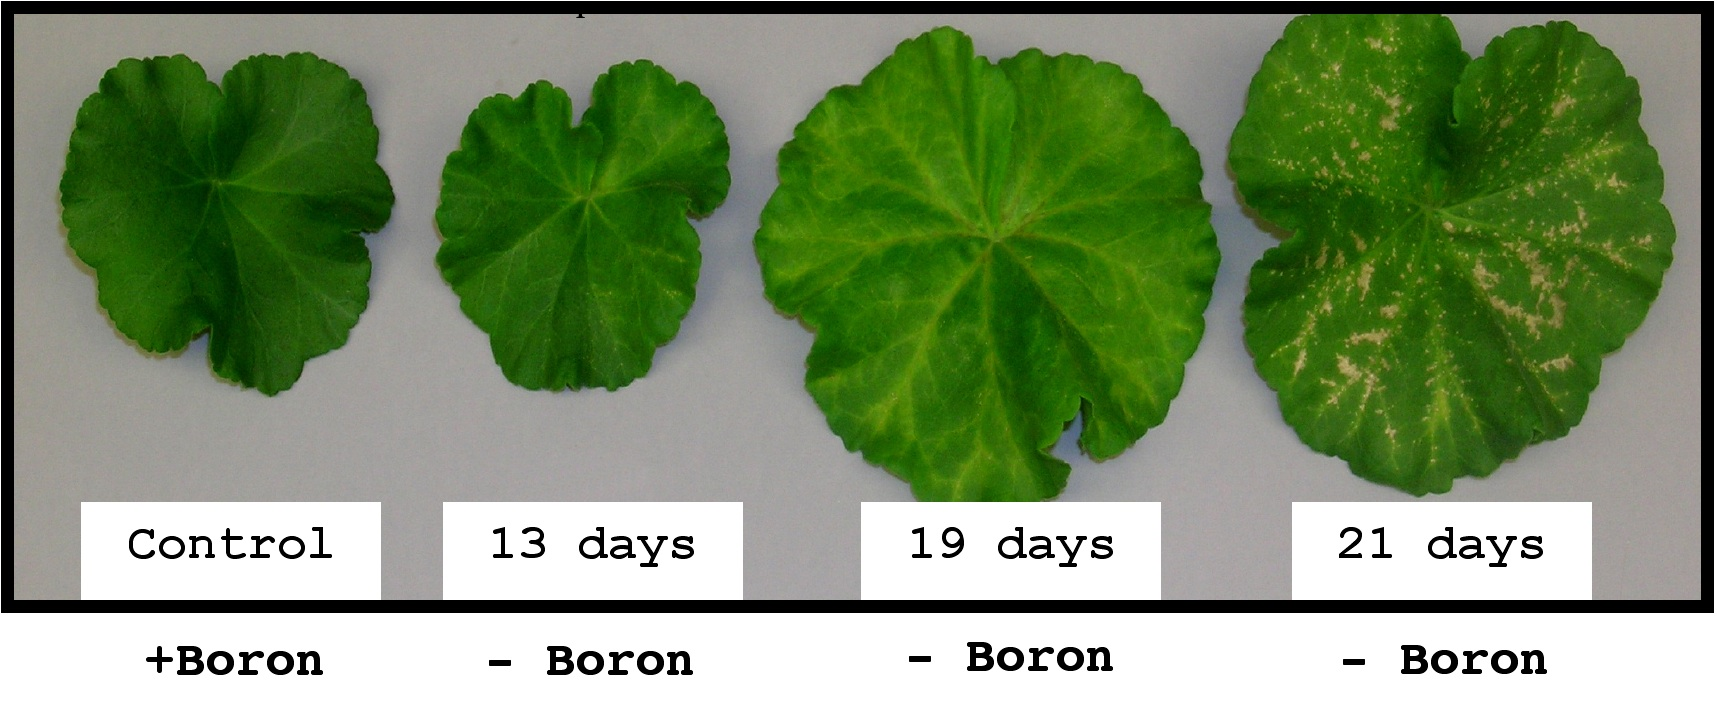 How boron deficiency affects a plant over time.